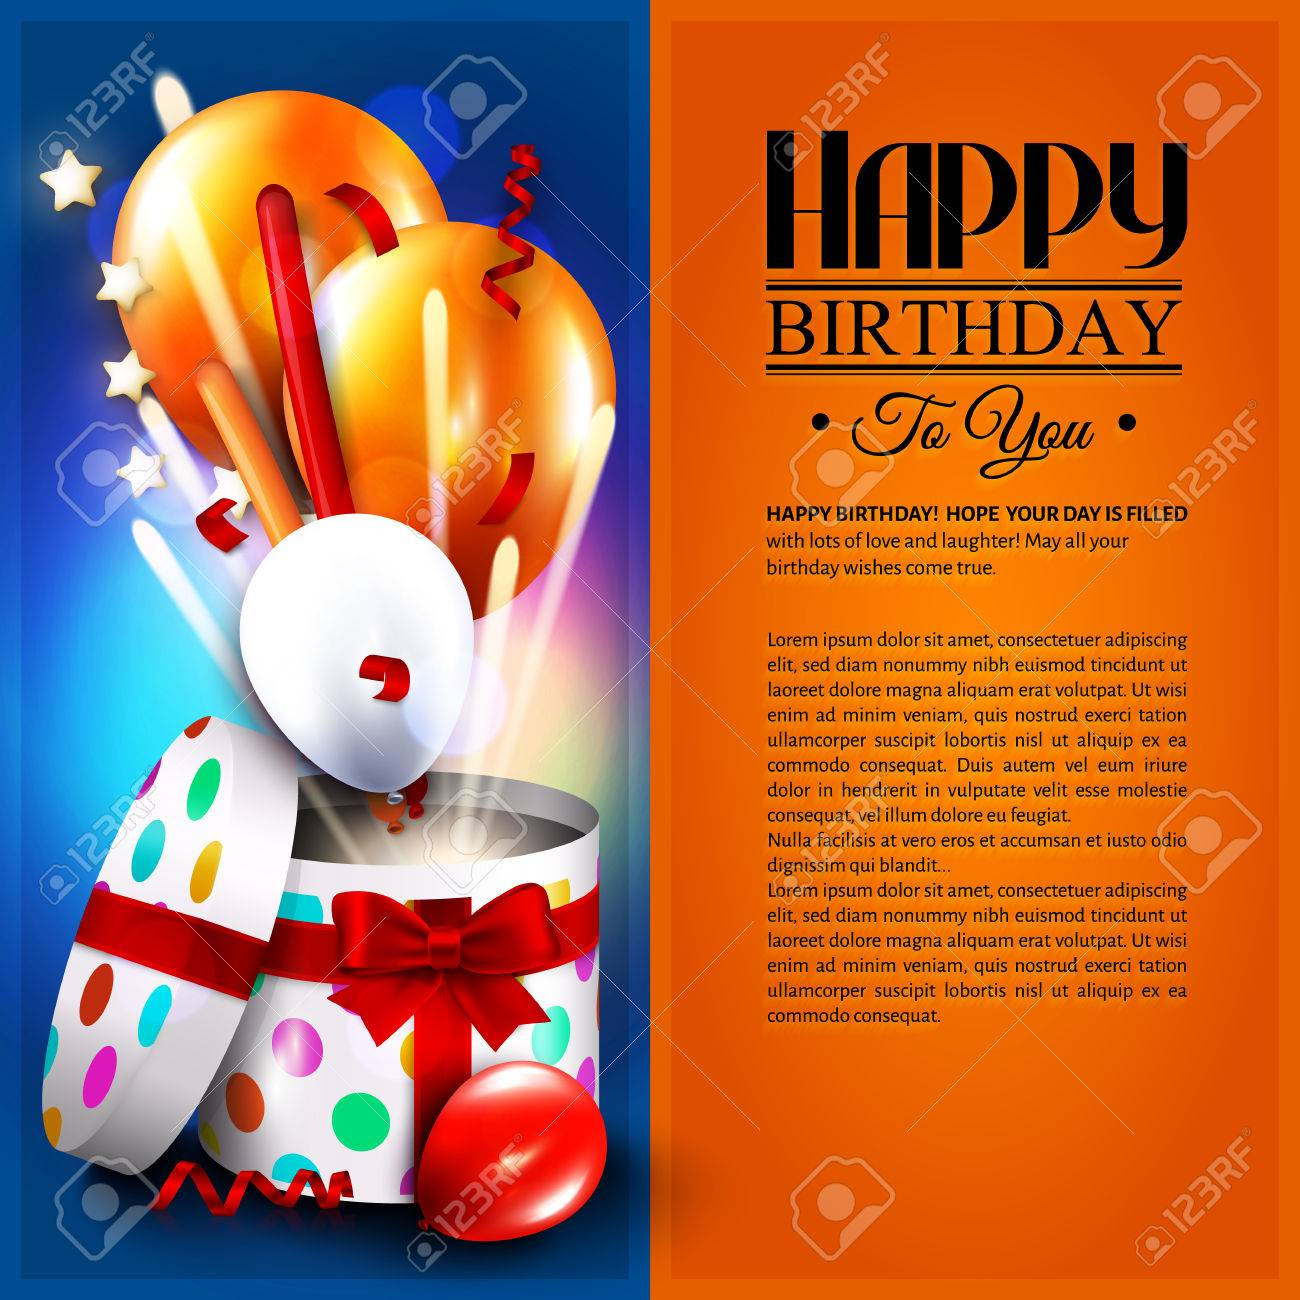 Birthday card with open gift box, balloons and magic light fireworks - 37208065